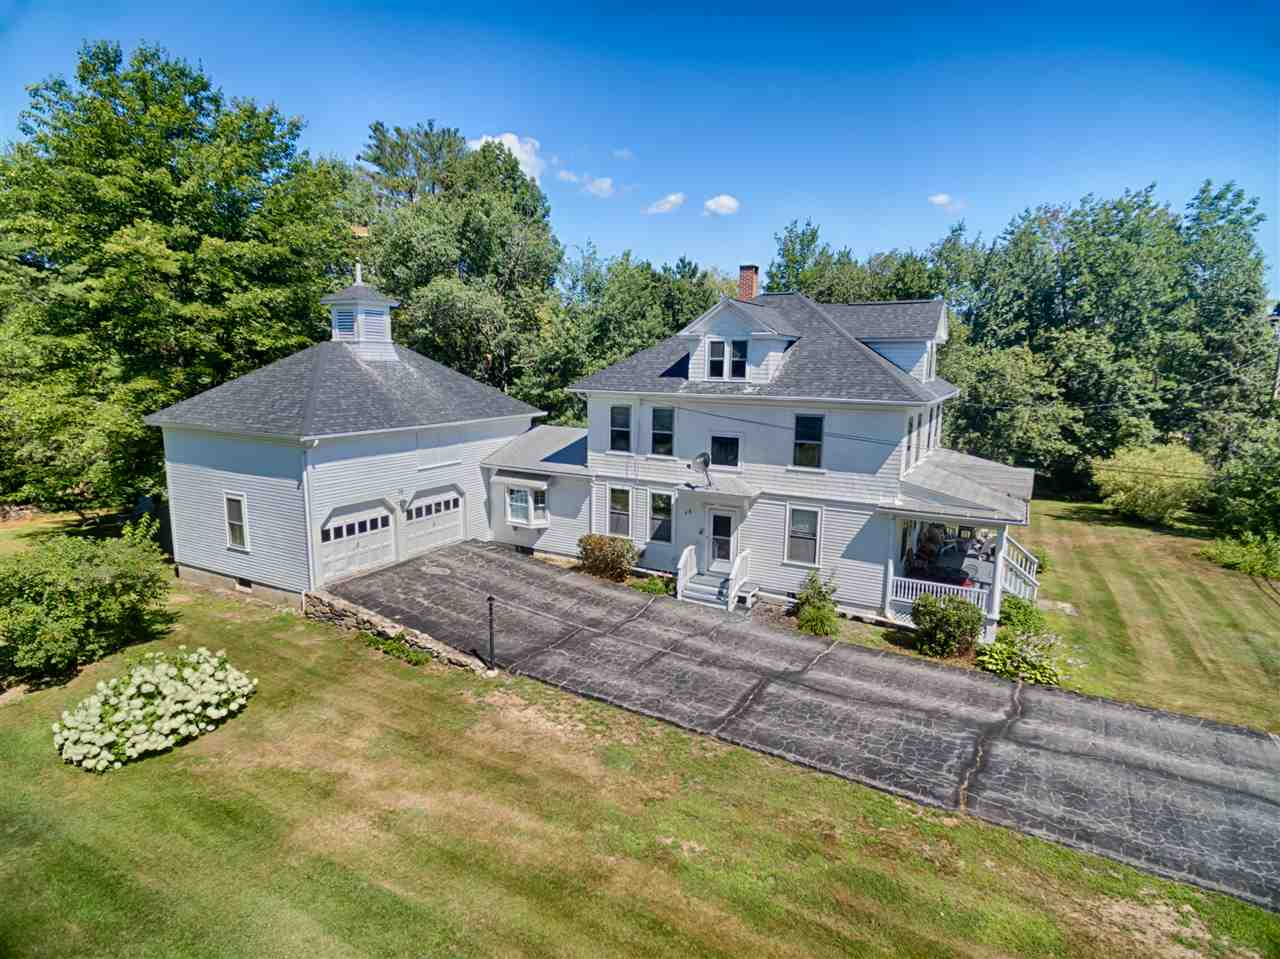 New Durham NH Horse Farm | Property  on Merrymeeting Lake